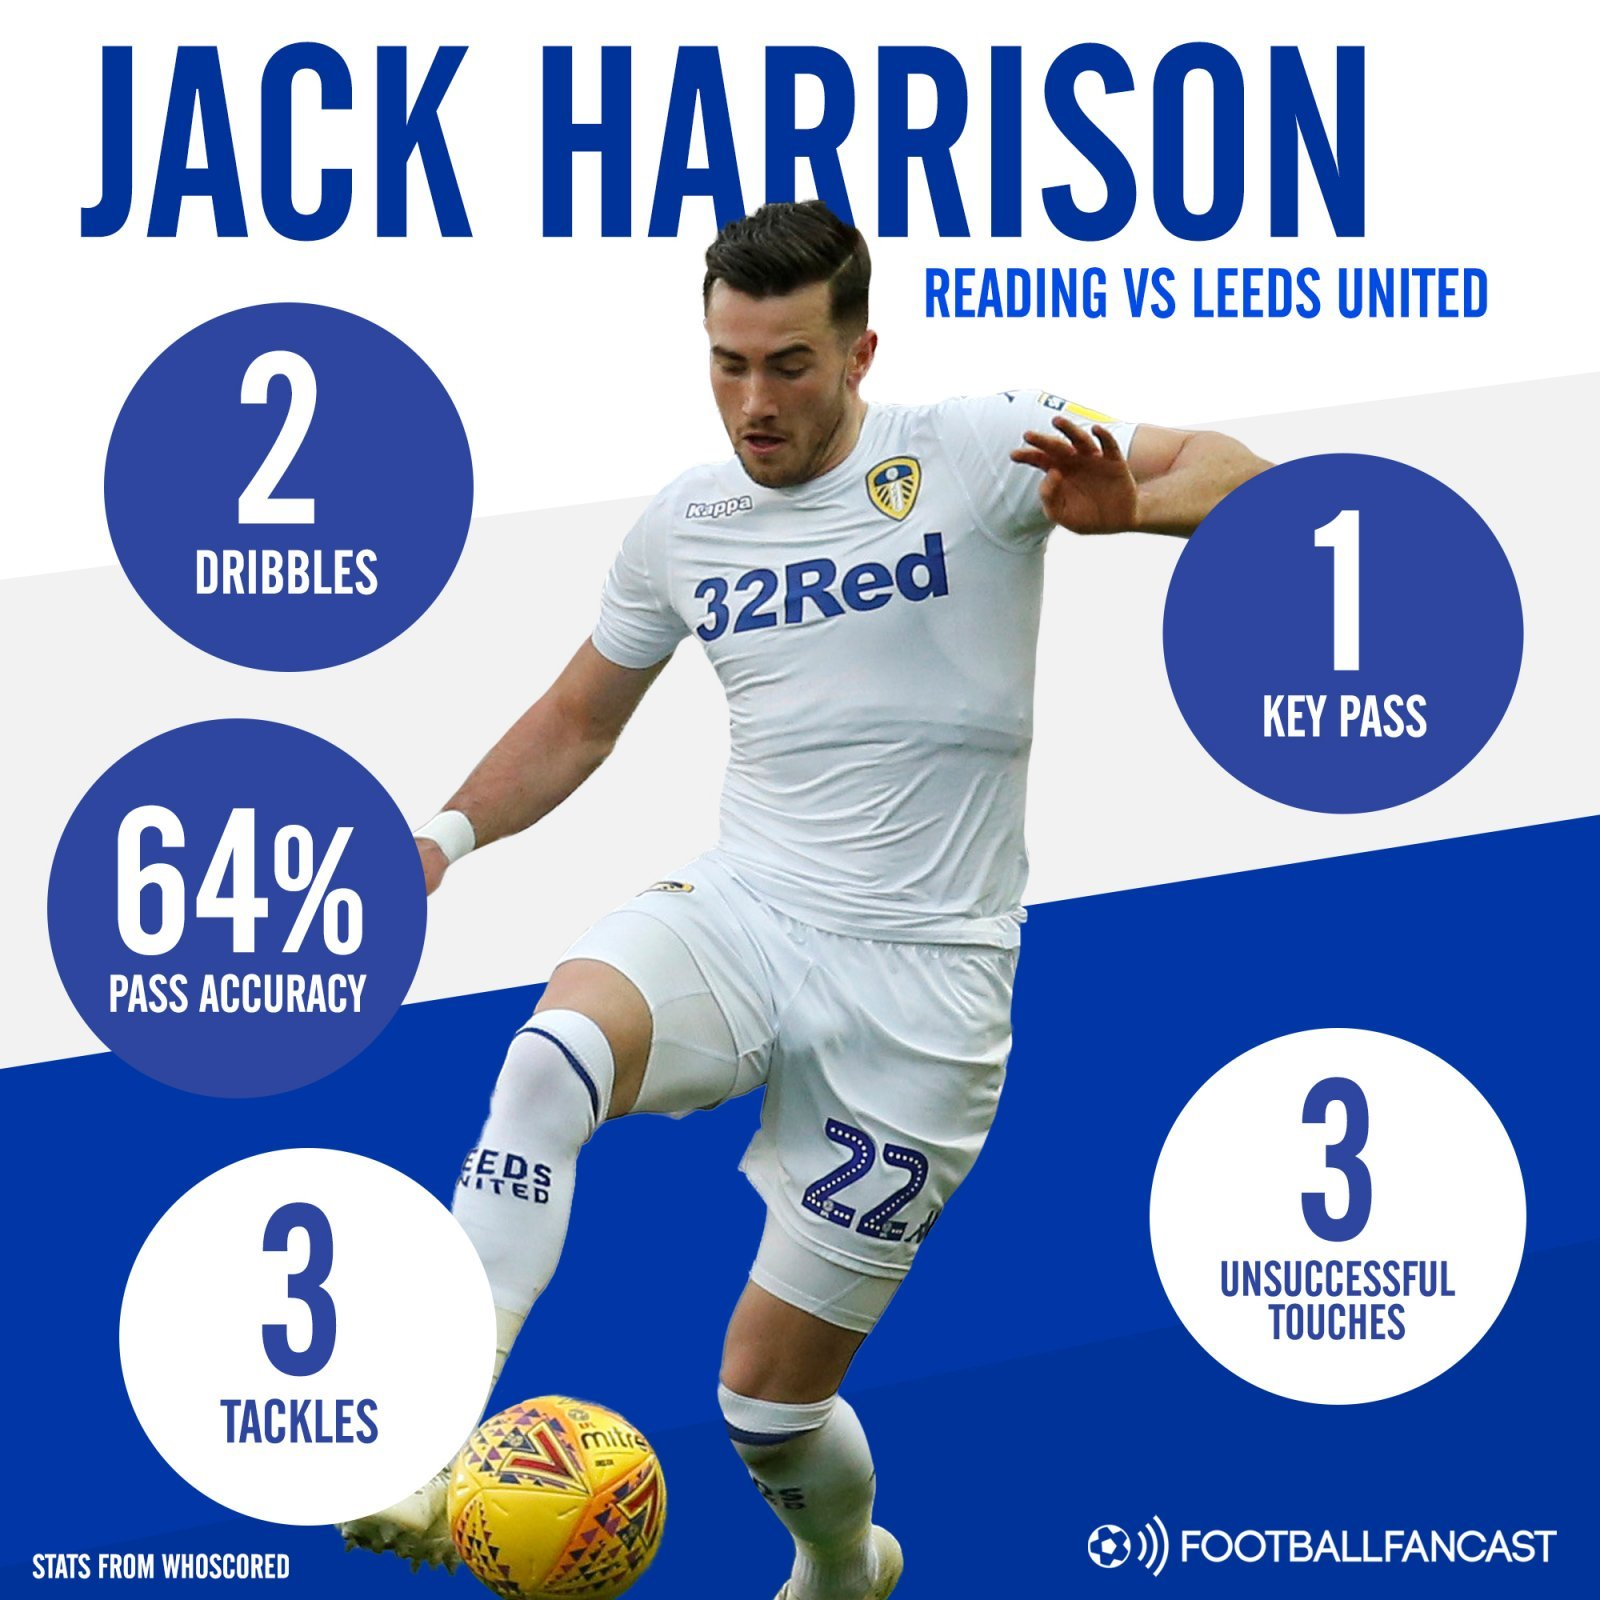 Leeds United winger Jack Harrison's stats vs Reading